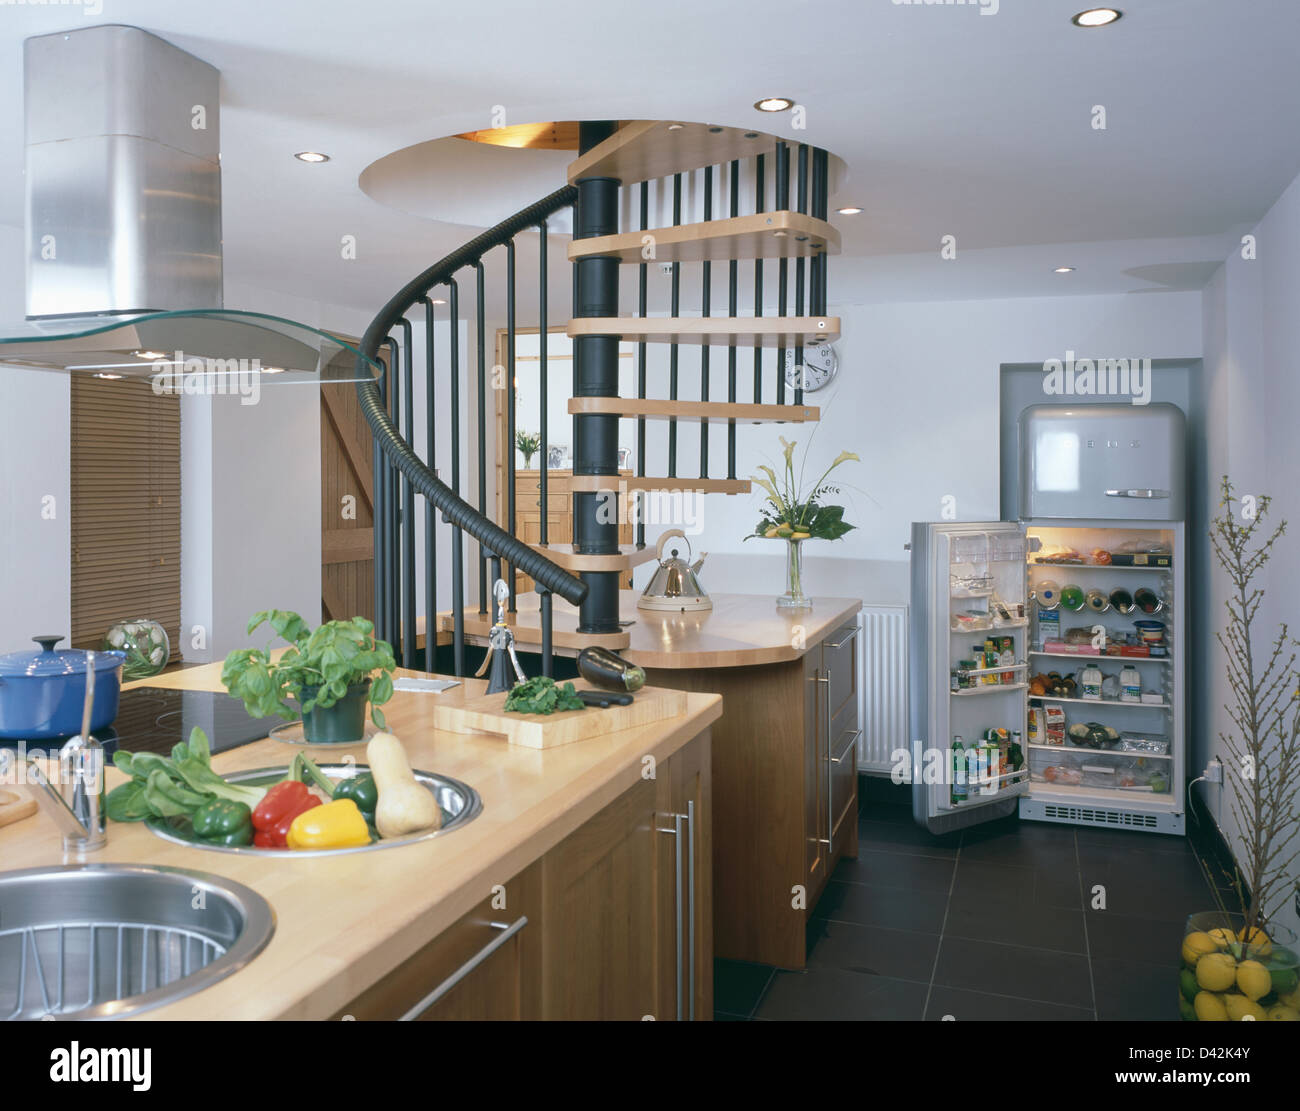 Superb Double Stainless Steel Sinks In Island Unit In Basement Kitchen With Spiral  Staircase And Smeg Fridge With Door Open